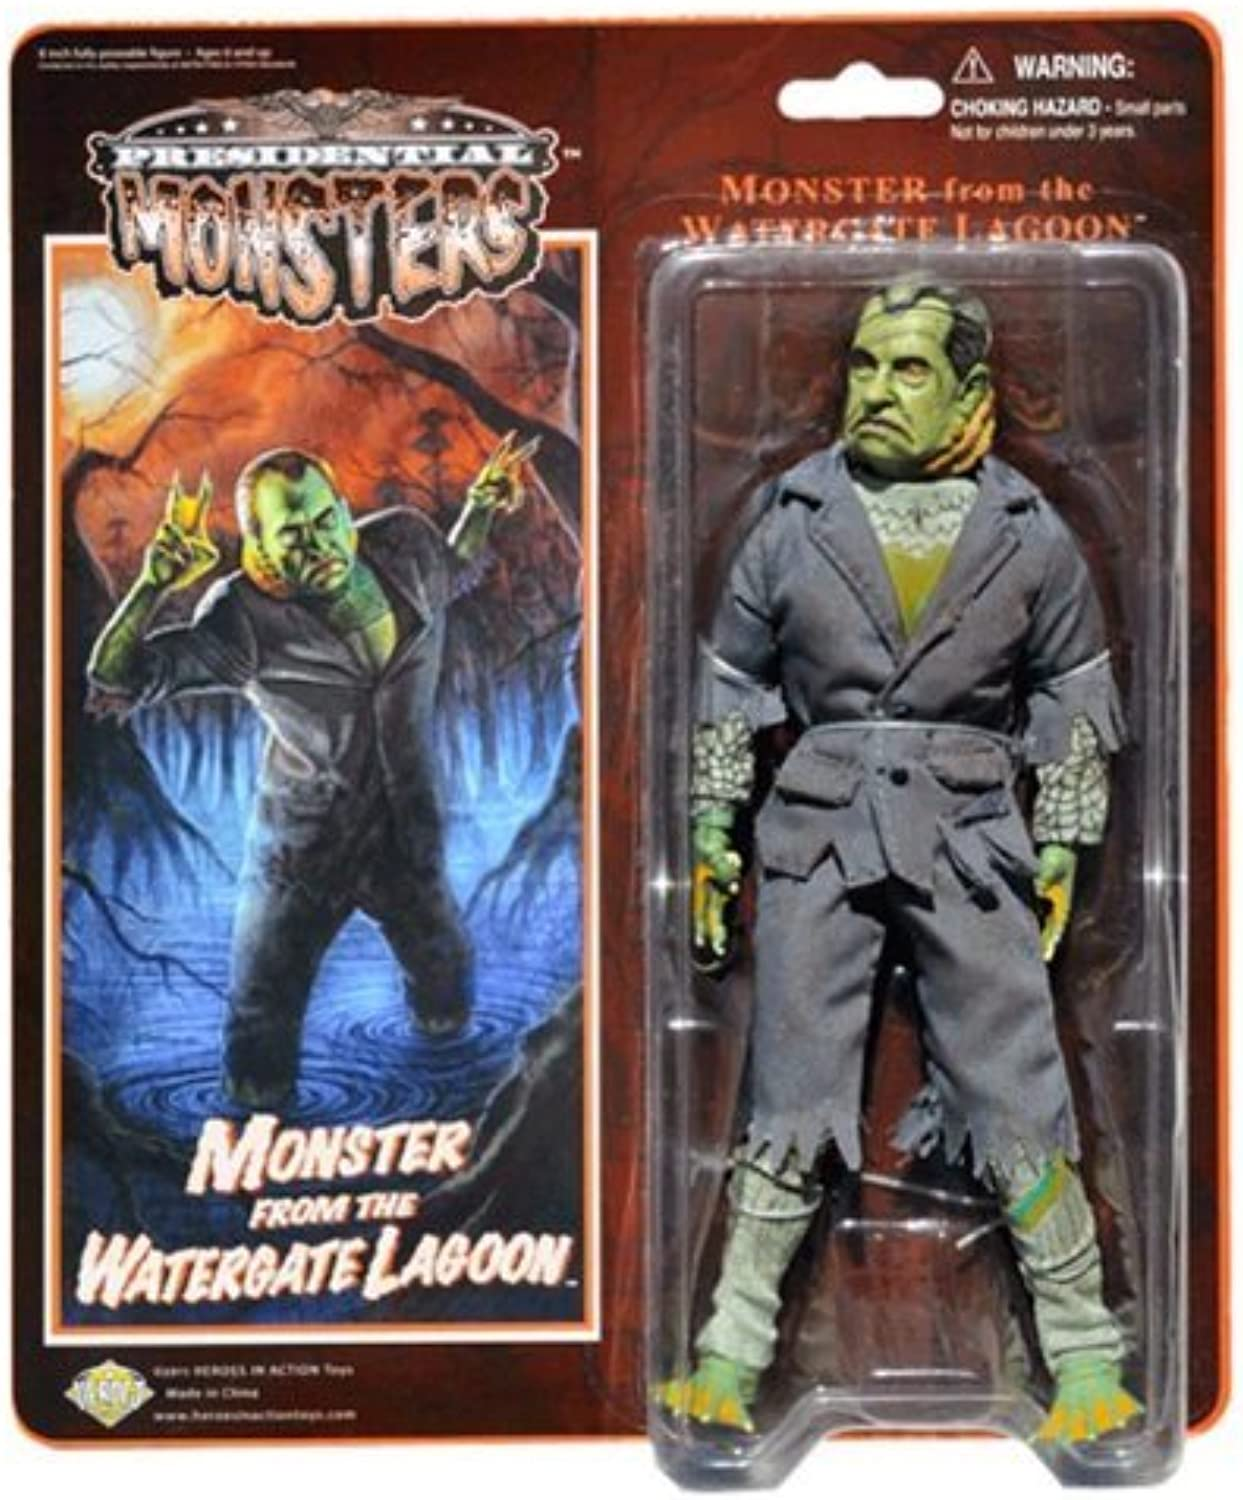 Monster from the Watergate Lagoon - Presidential Monsters - Richard Nixon as a Fish Monster - 8 1 4 tall fully poseable action figure - with cloth costume by Heroes In Action Toys - Presidential Monsters